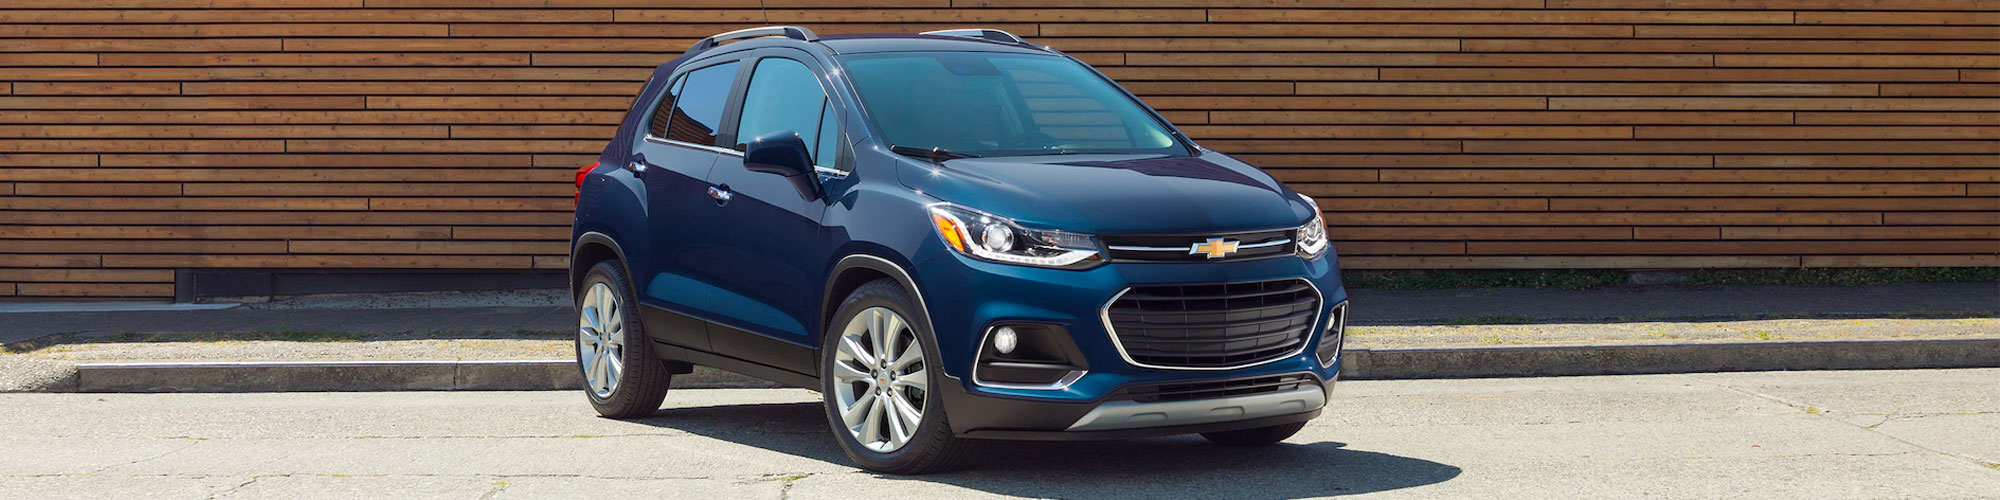 Chevrolet Trax Baltimore